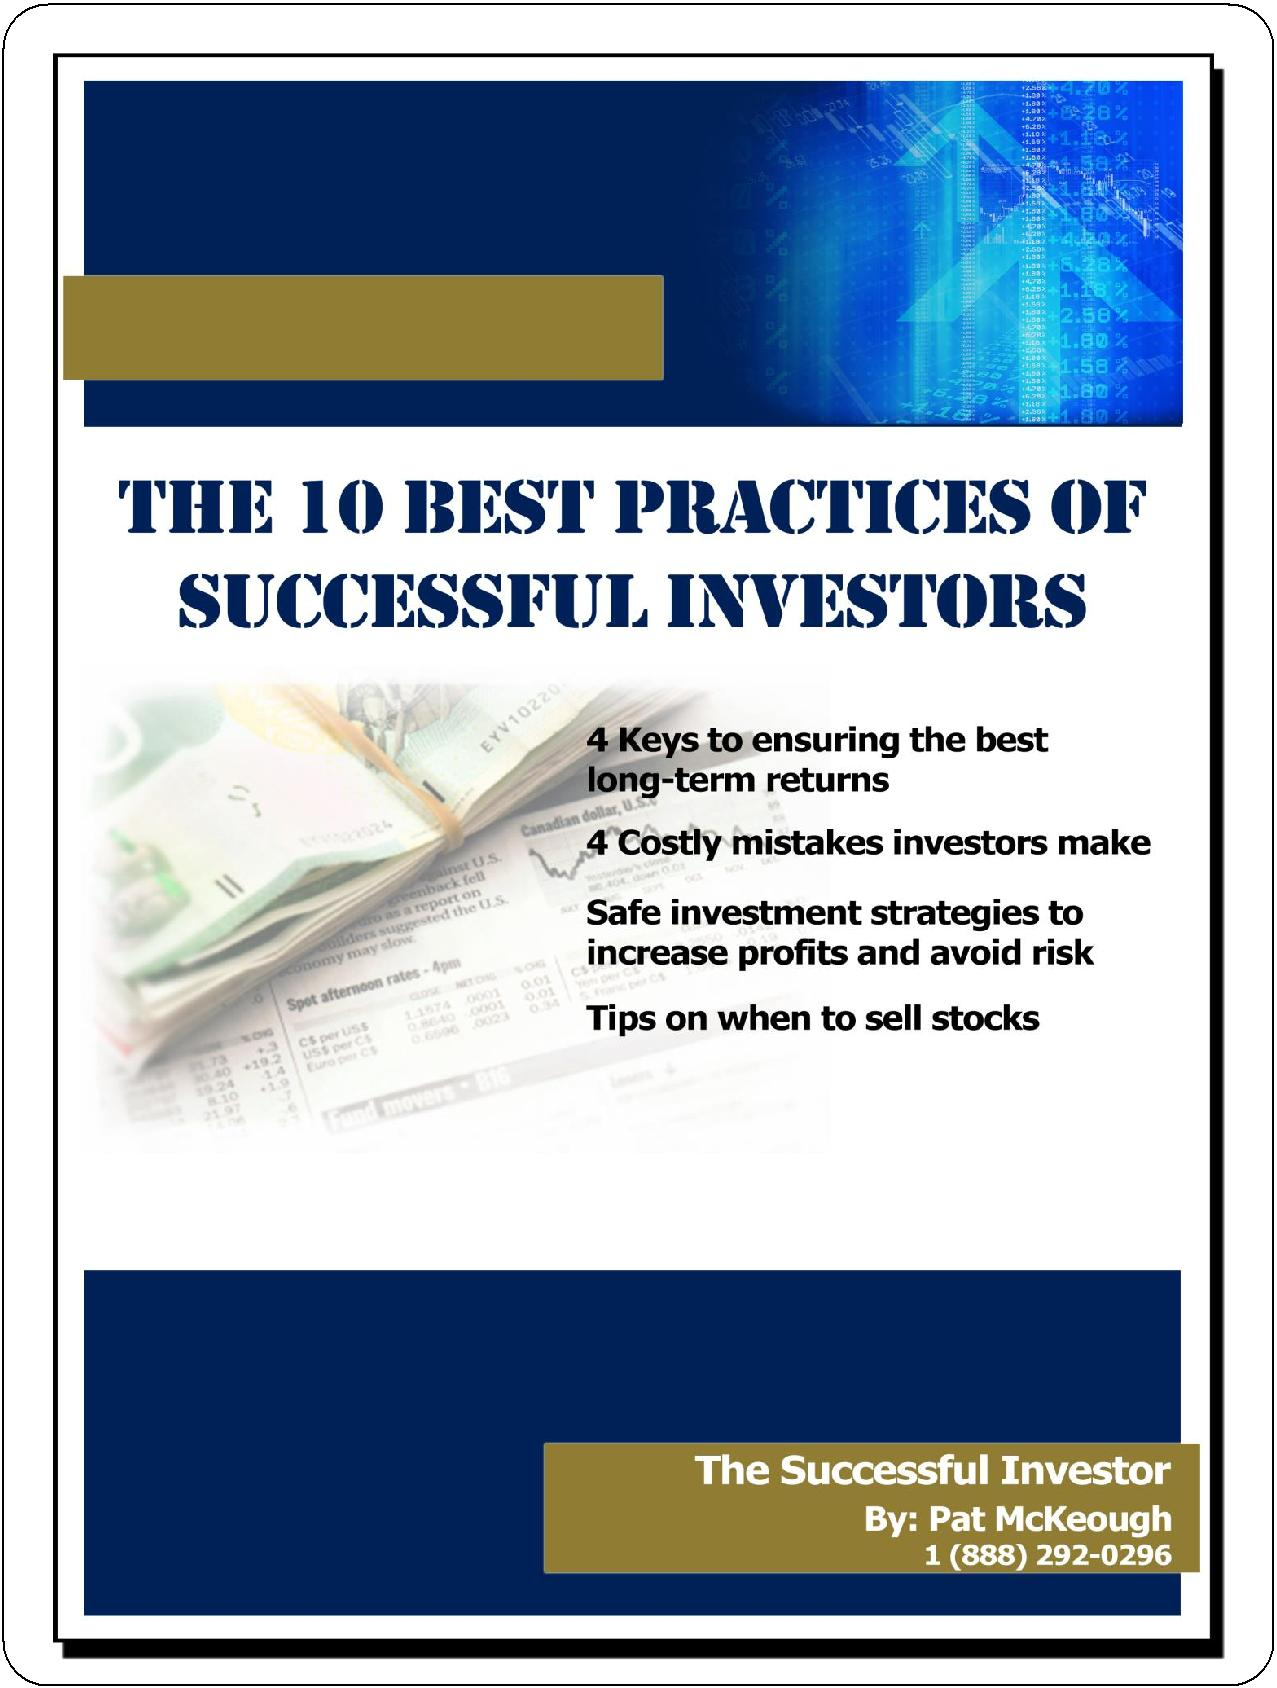 The 10 Best Practices of Successful Investors